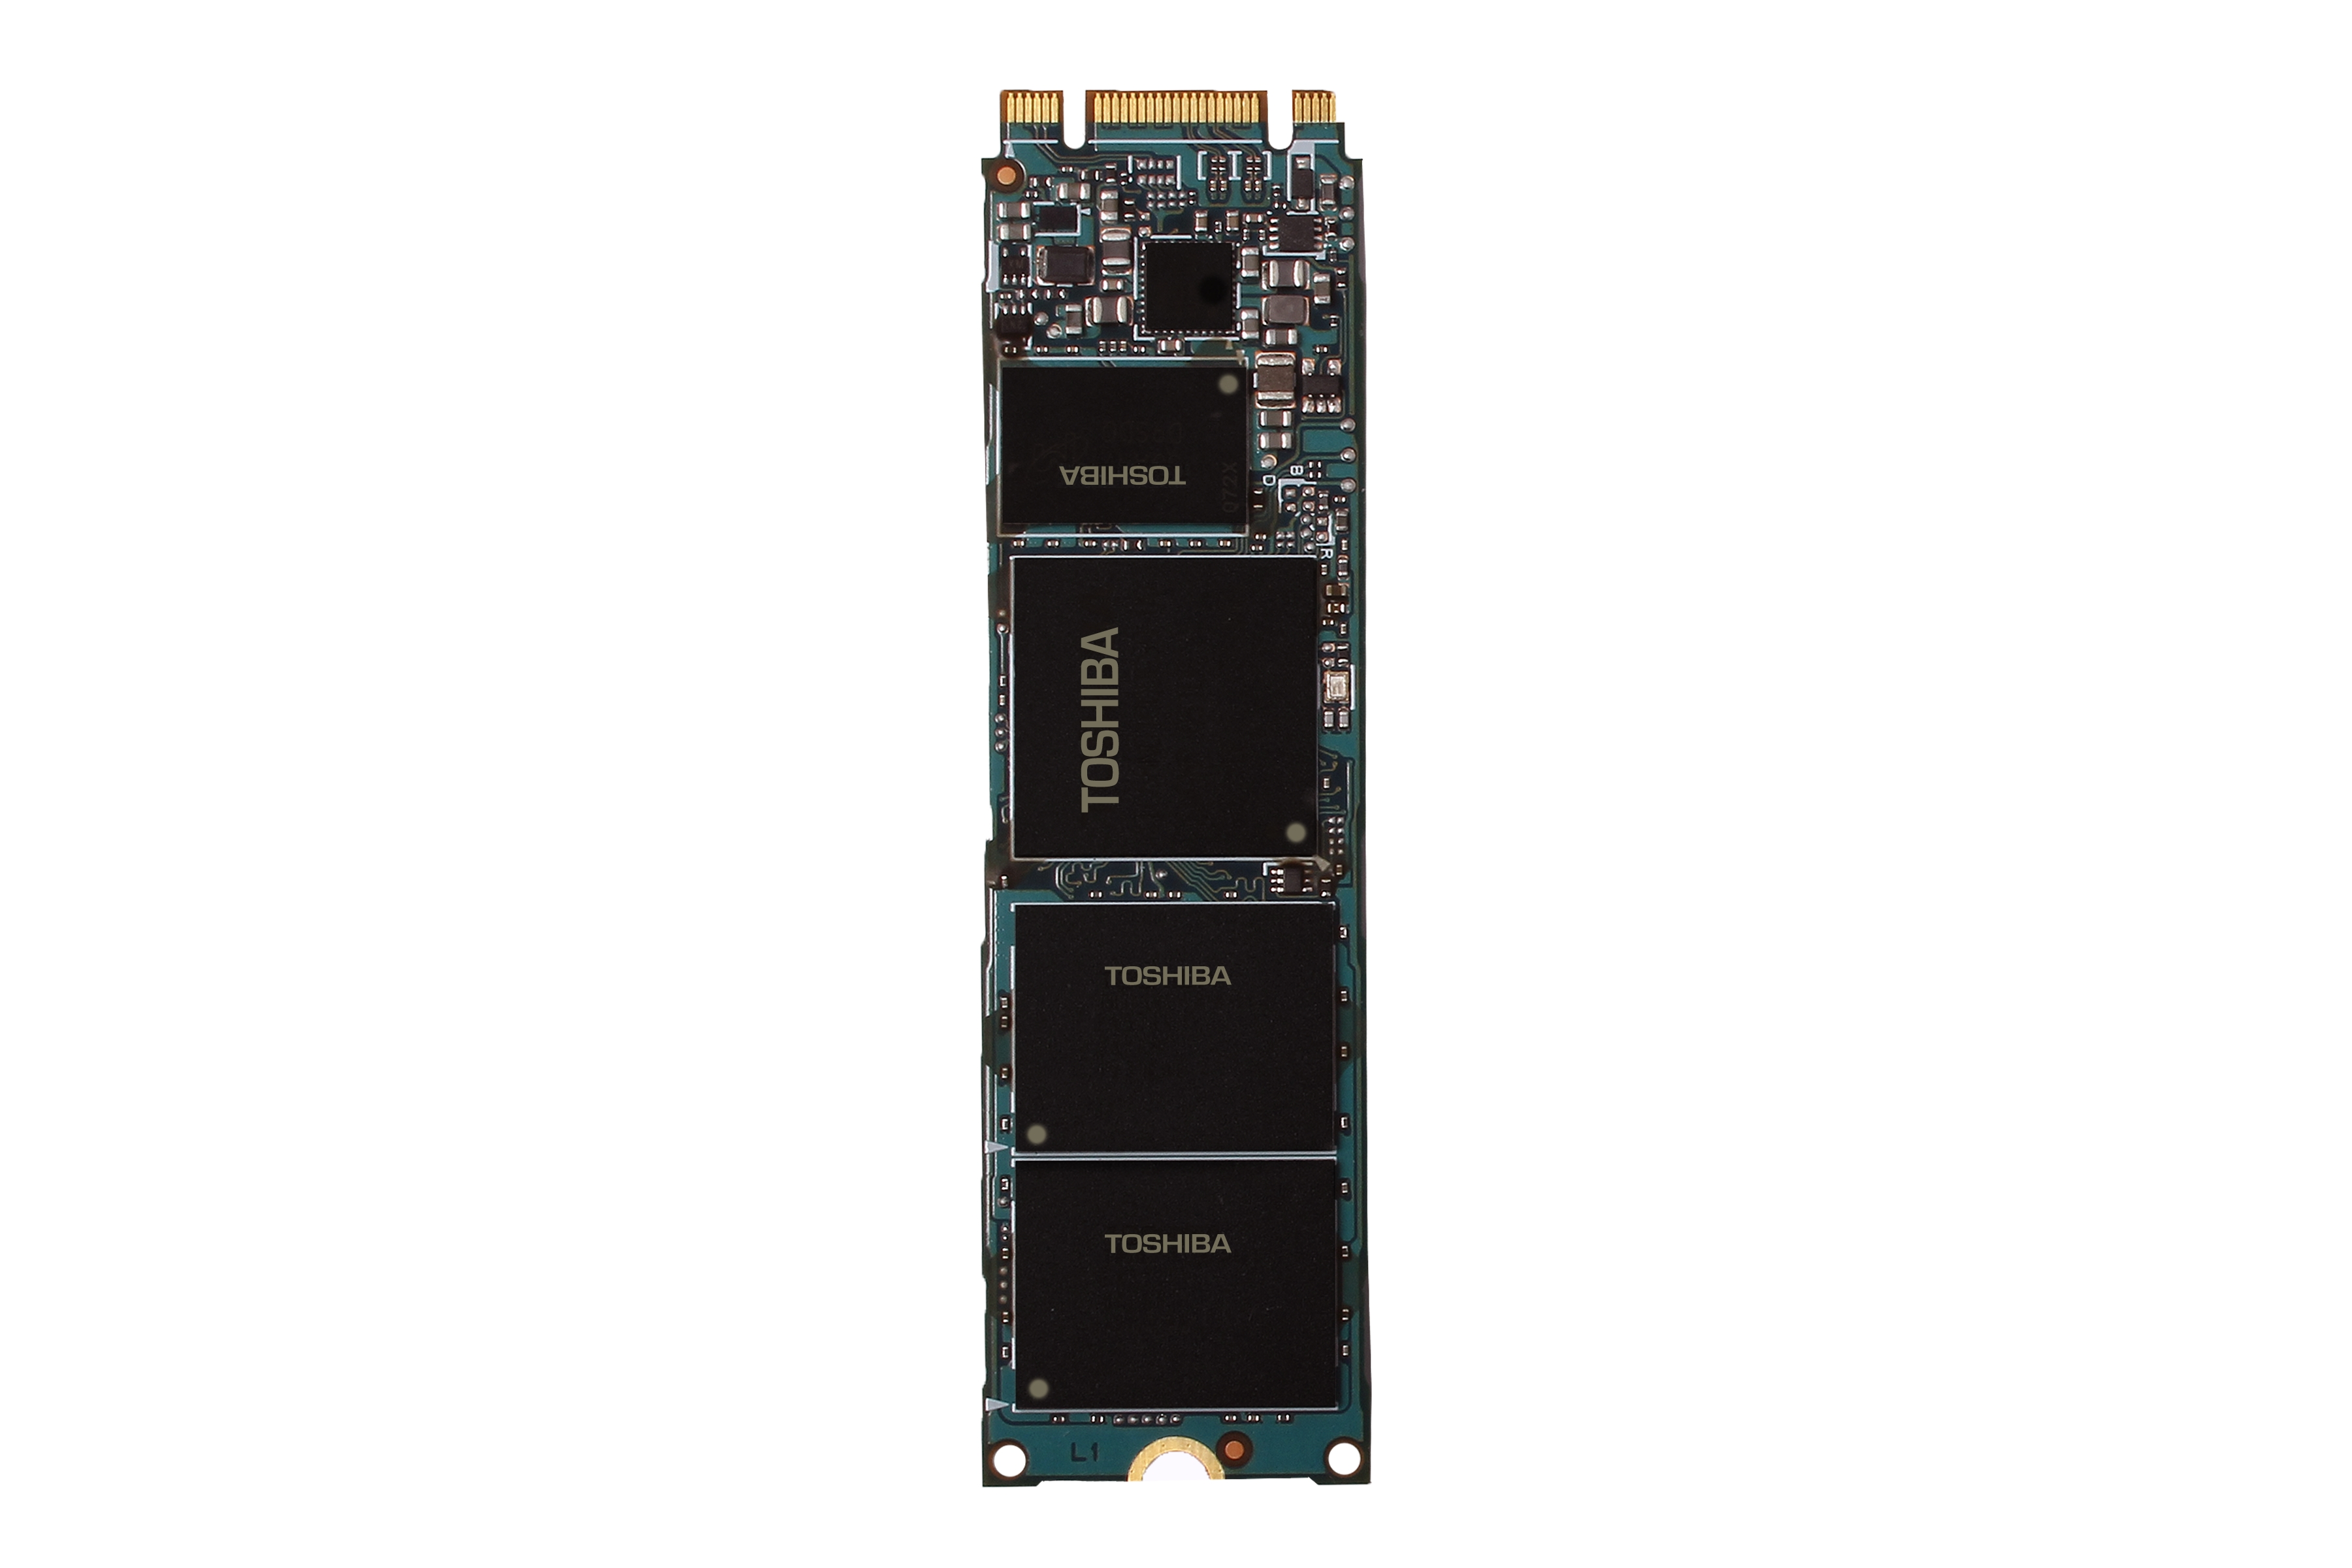 """Toshiba: 15nm TLC NAND """"SG5 Series"""" Client SSD M.2 2280-type (Photo: Business Wire)"""